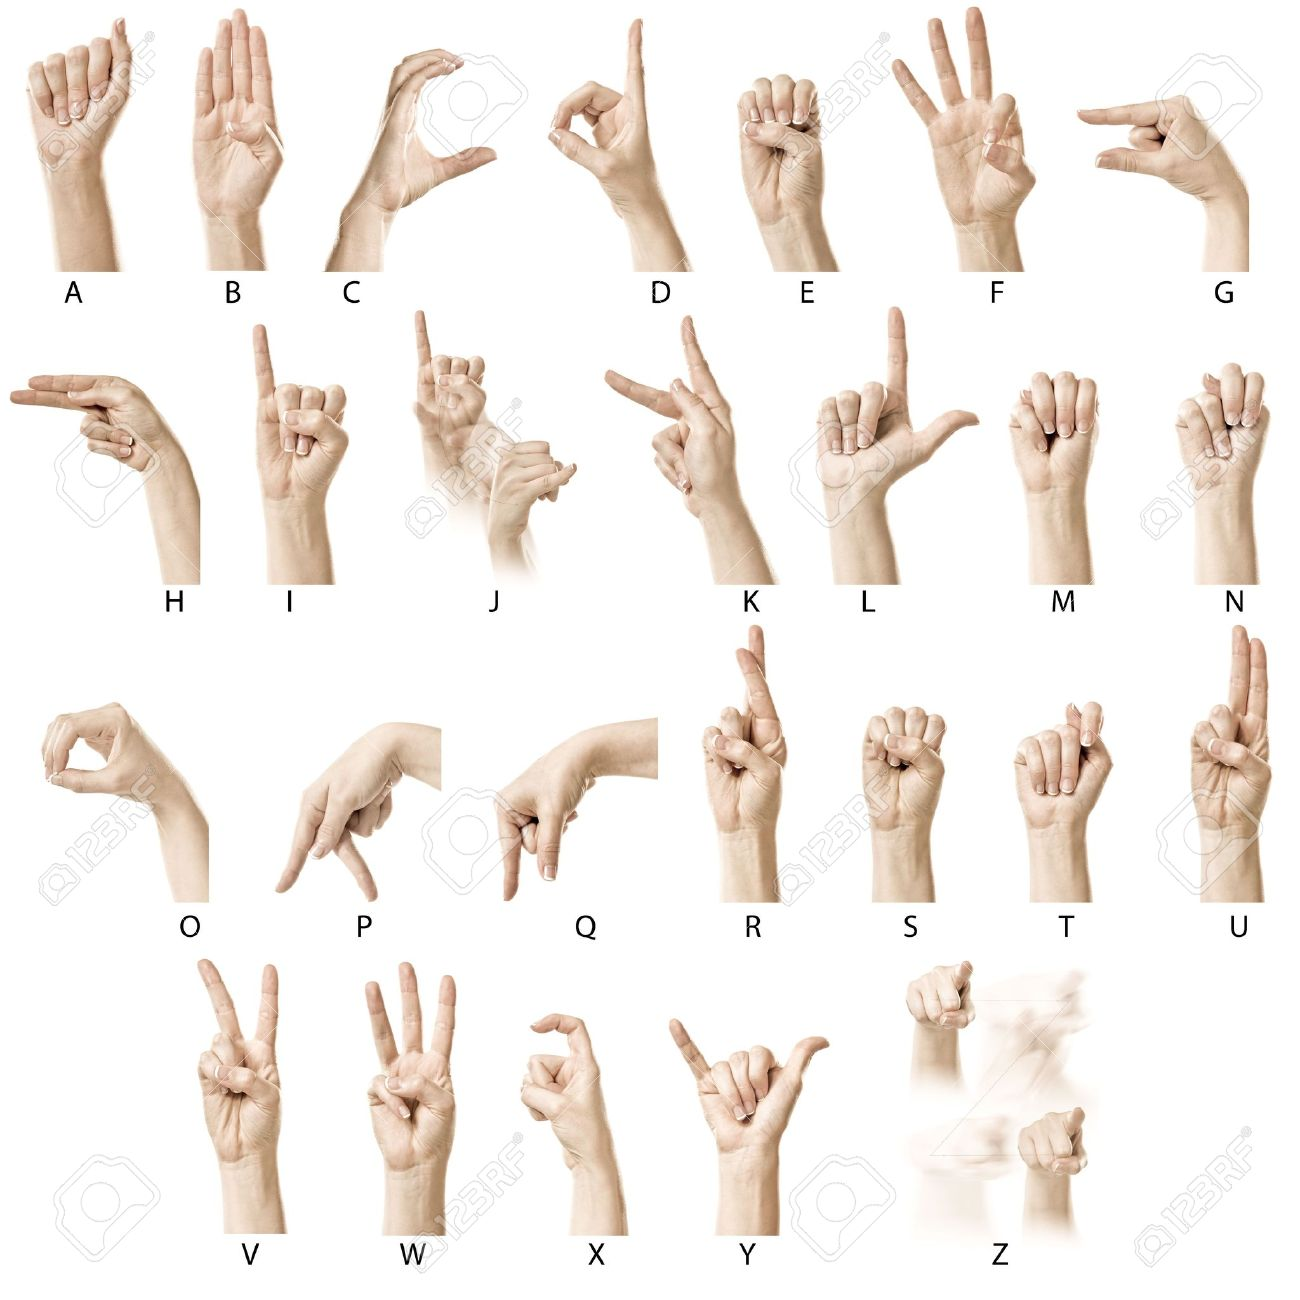 Multiculturalism In Australia Essay  Finger Spelling The Alphabet In American Sign Language ASL Stock Photo Multiculturalism In Australia Essay